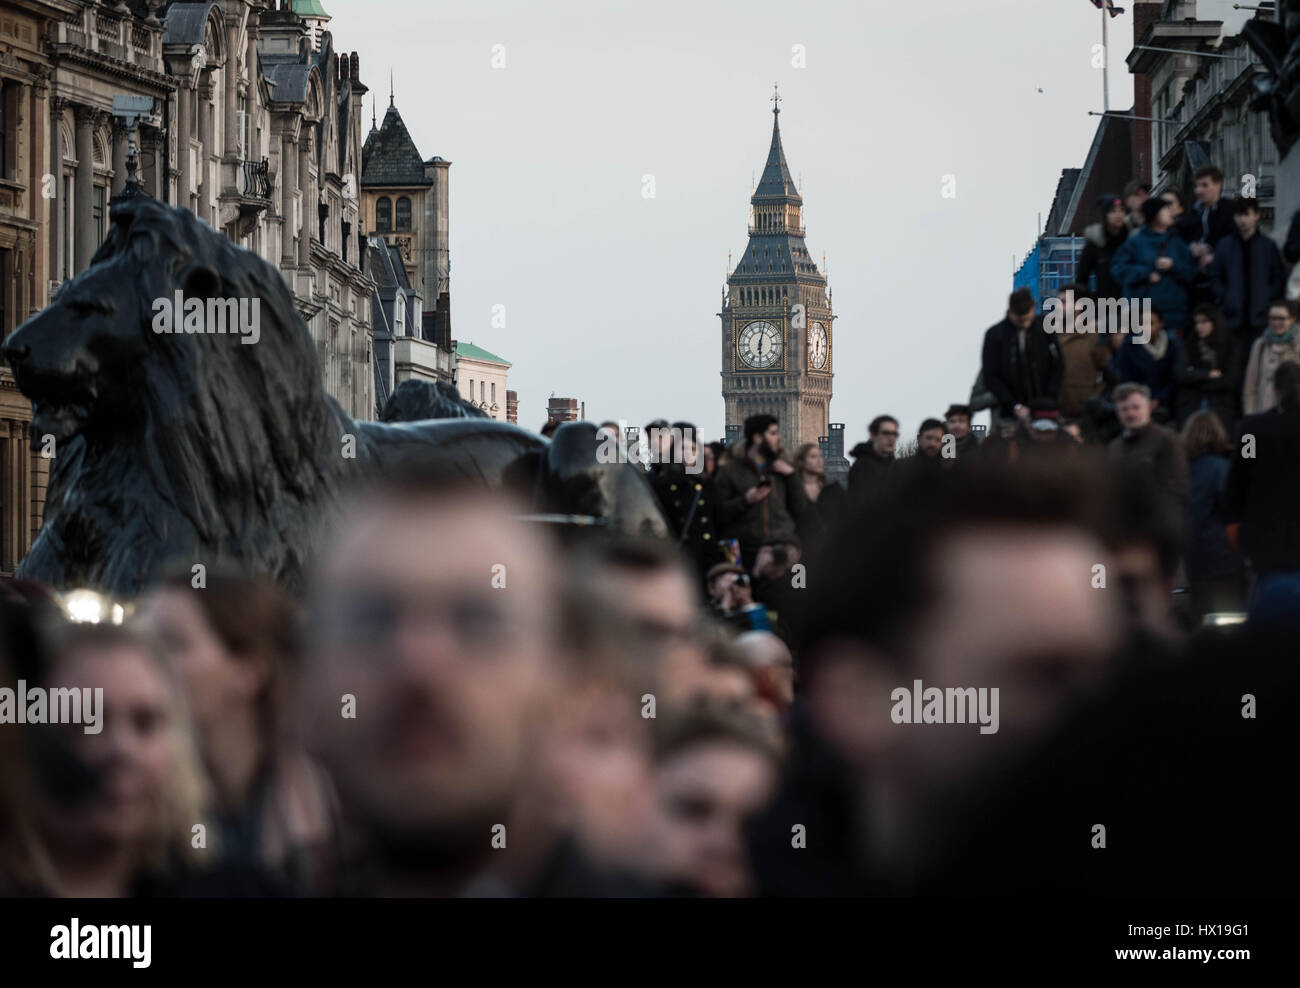 London, UK. 23rd March, 2017. Crowds gather in Trafalgar Square for a candle-lit vigil and one minute silence in - Stock Image